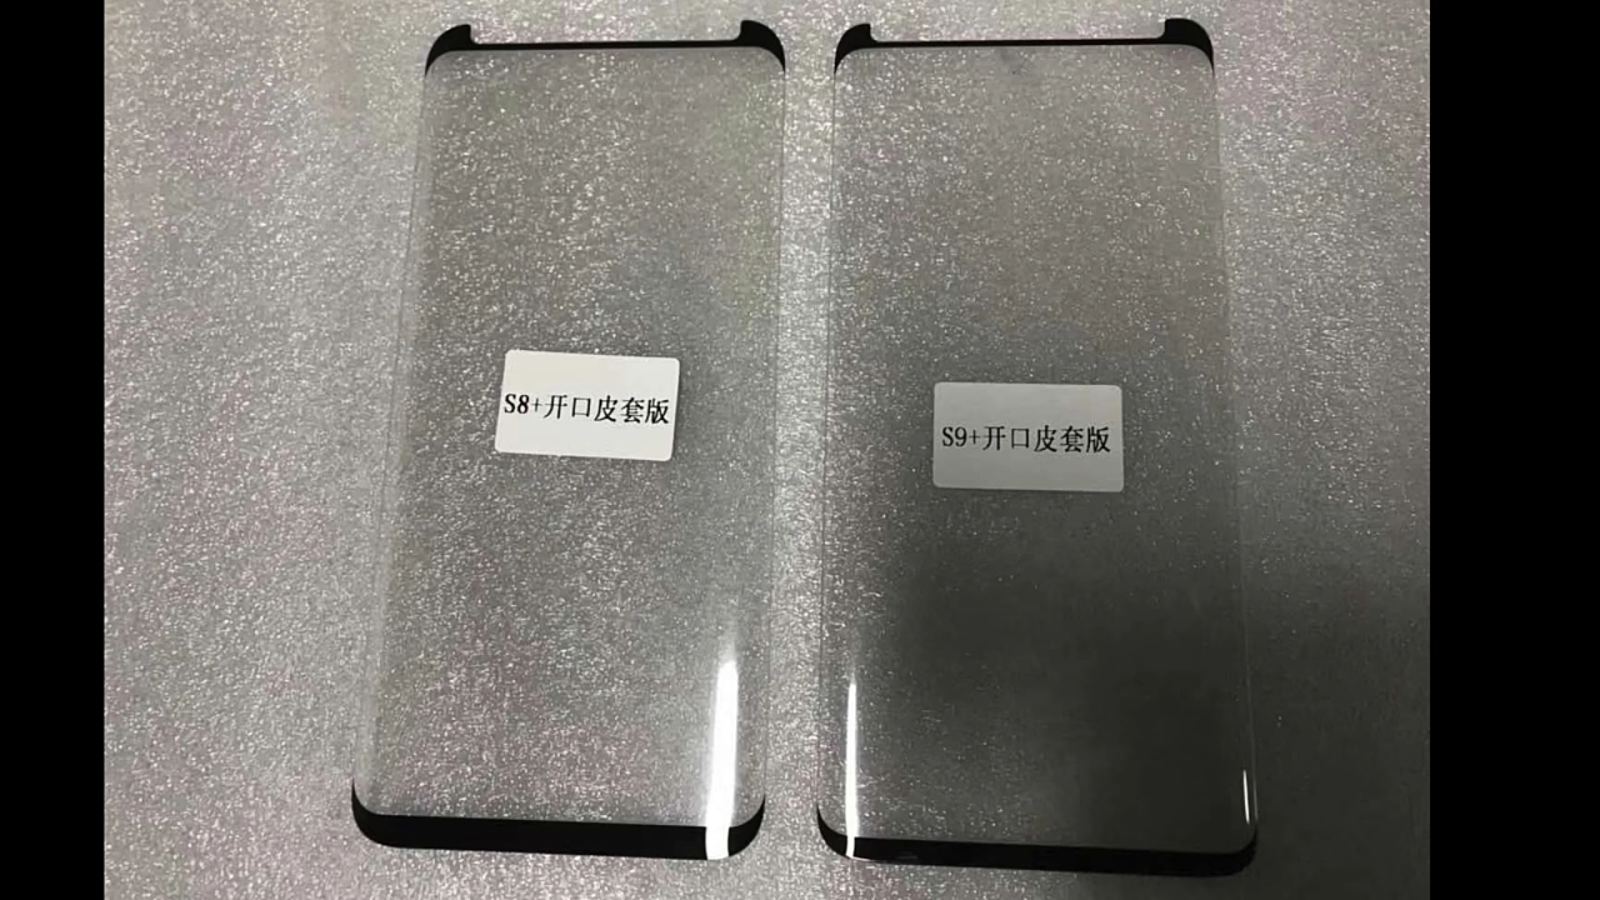 Samsung galaxy s8 and s9 screen protectors